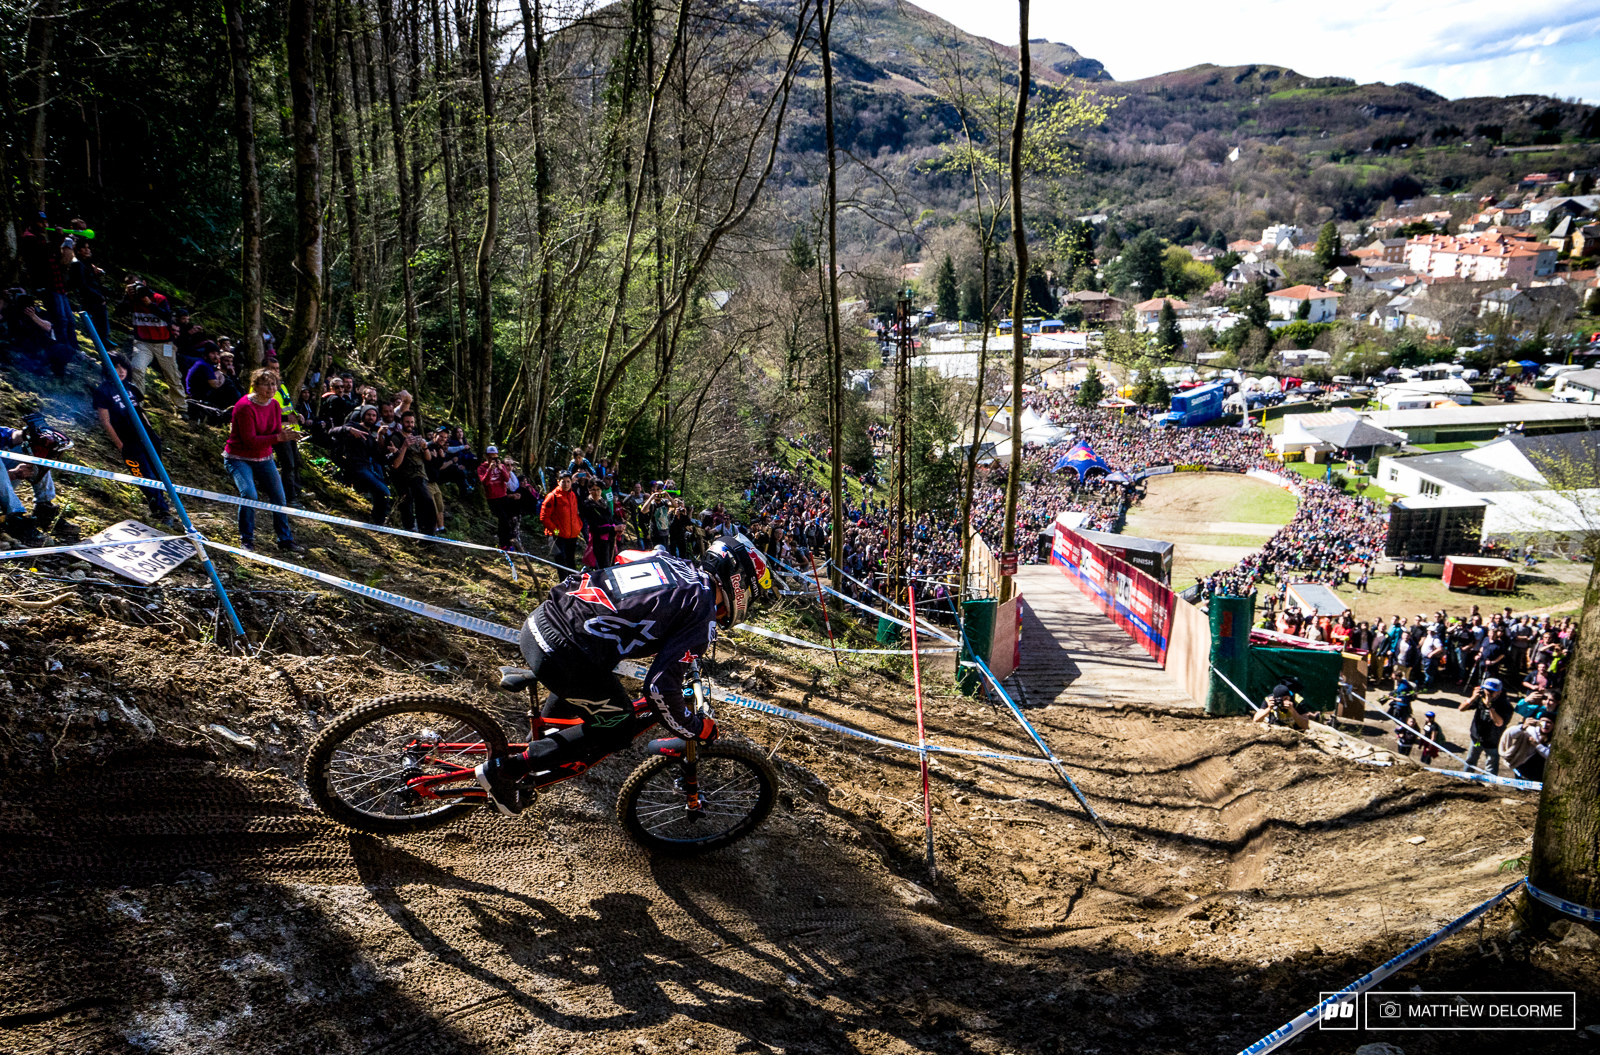 Aaron Gwin charging into the finish area.